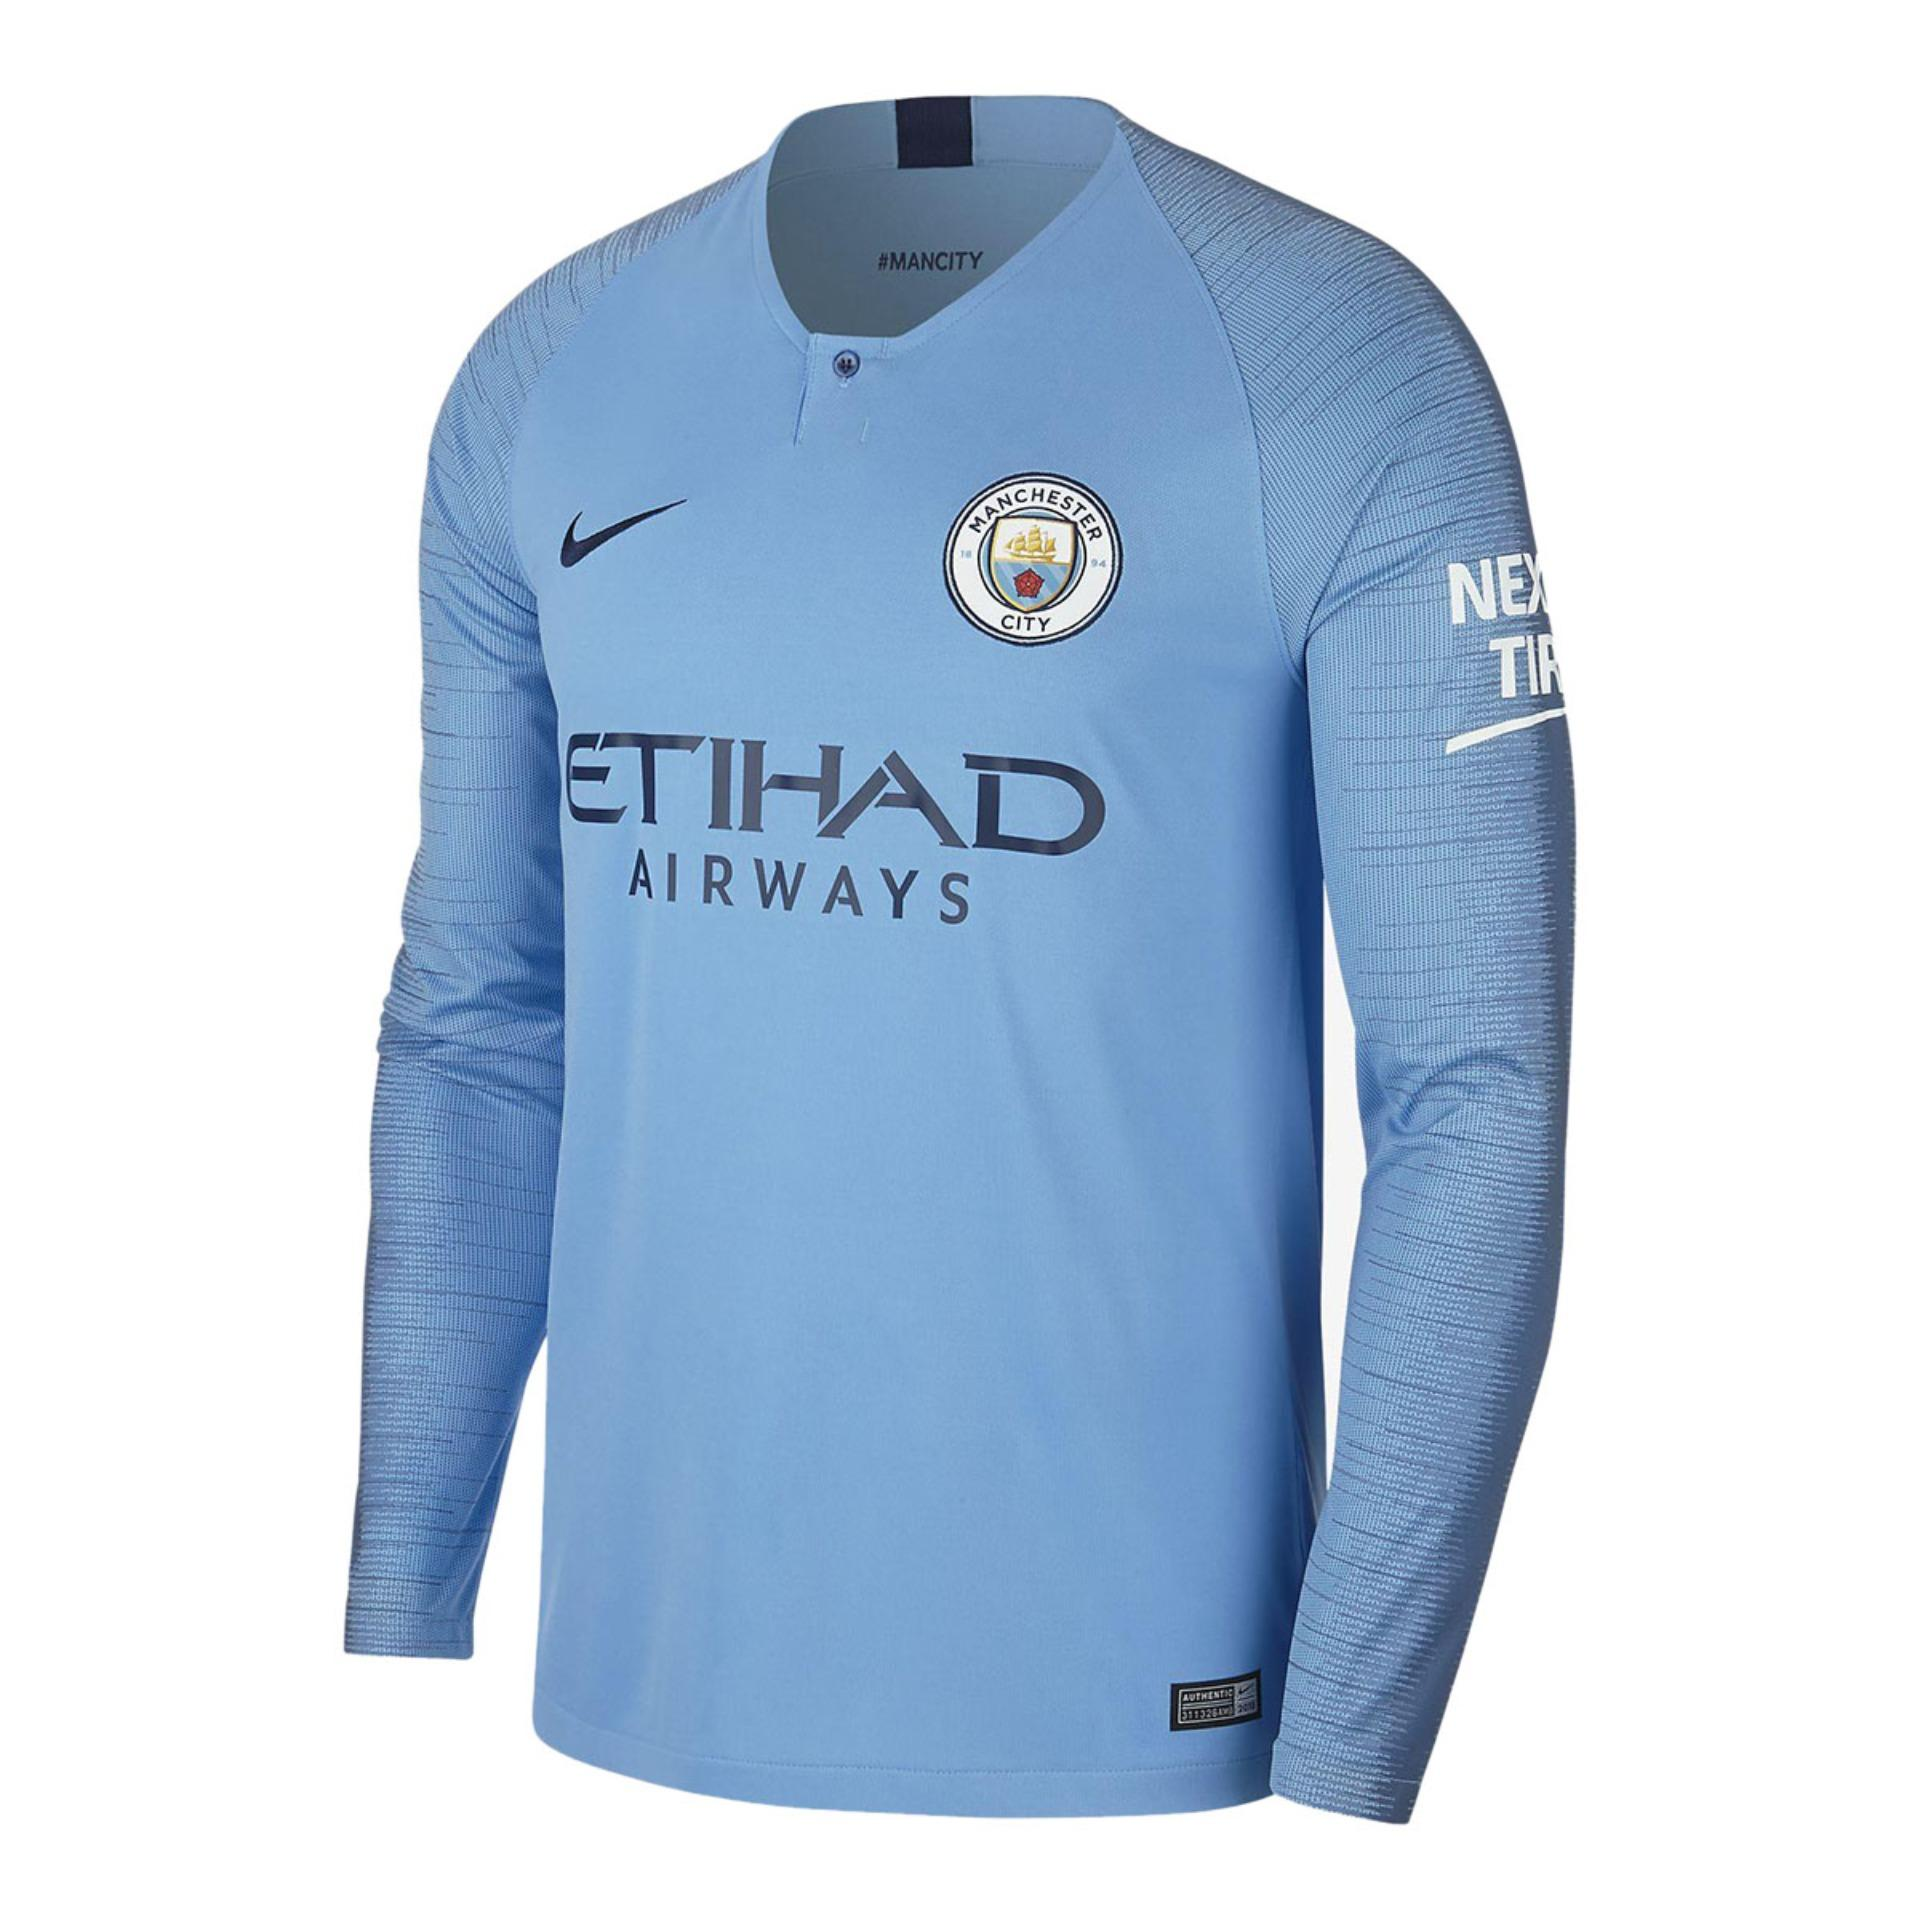 7375ad4ab 2018-19 Manchester City Home Long Sleeve Jersey (China) - Light Blue